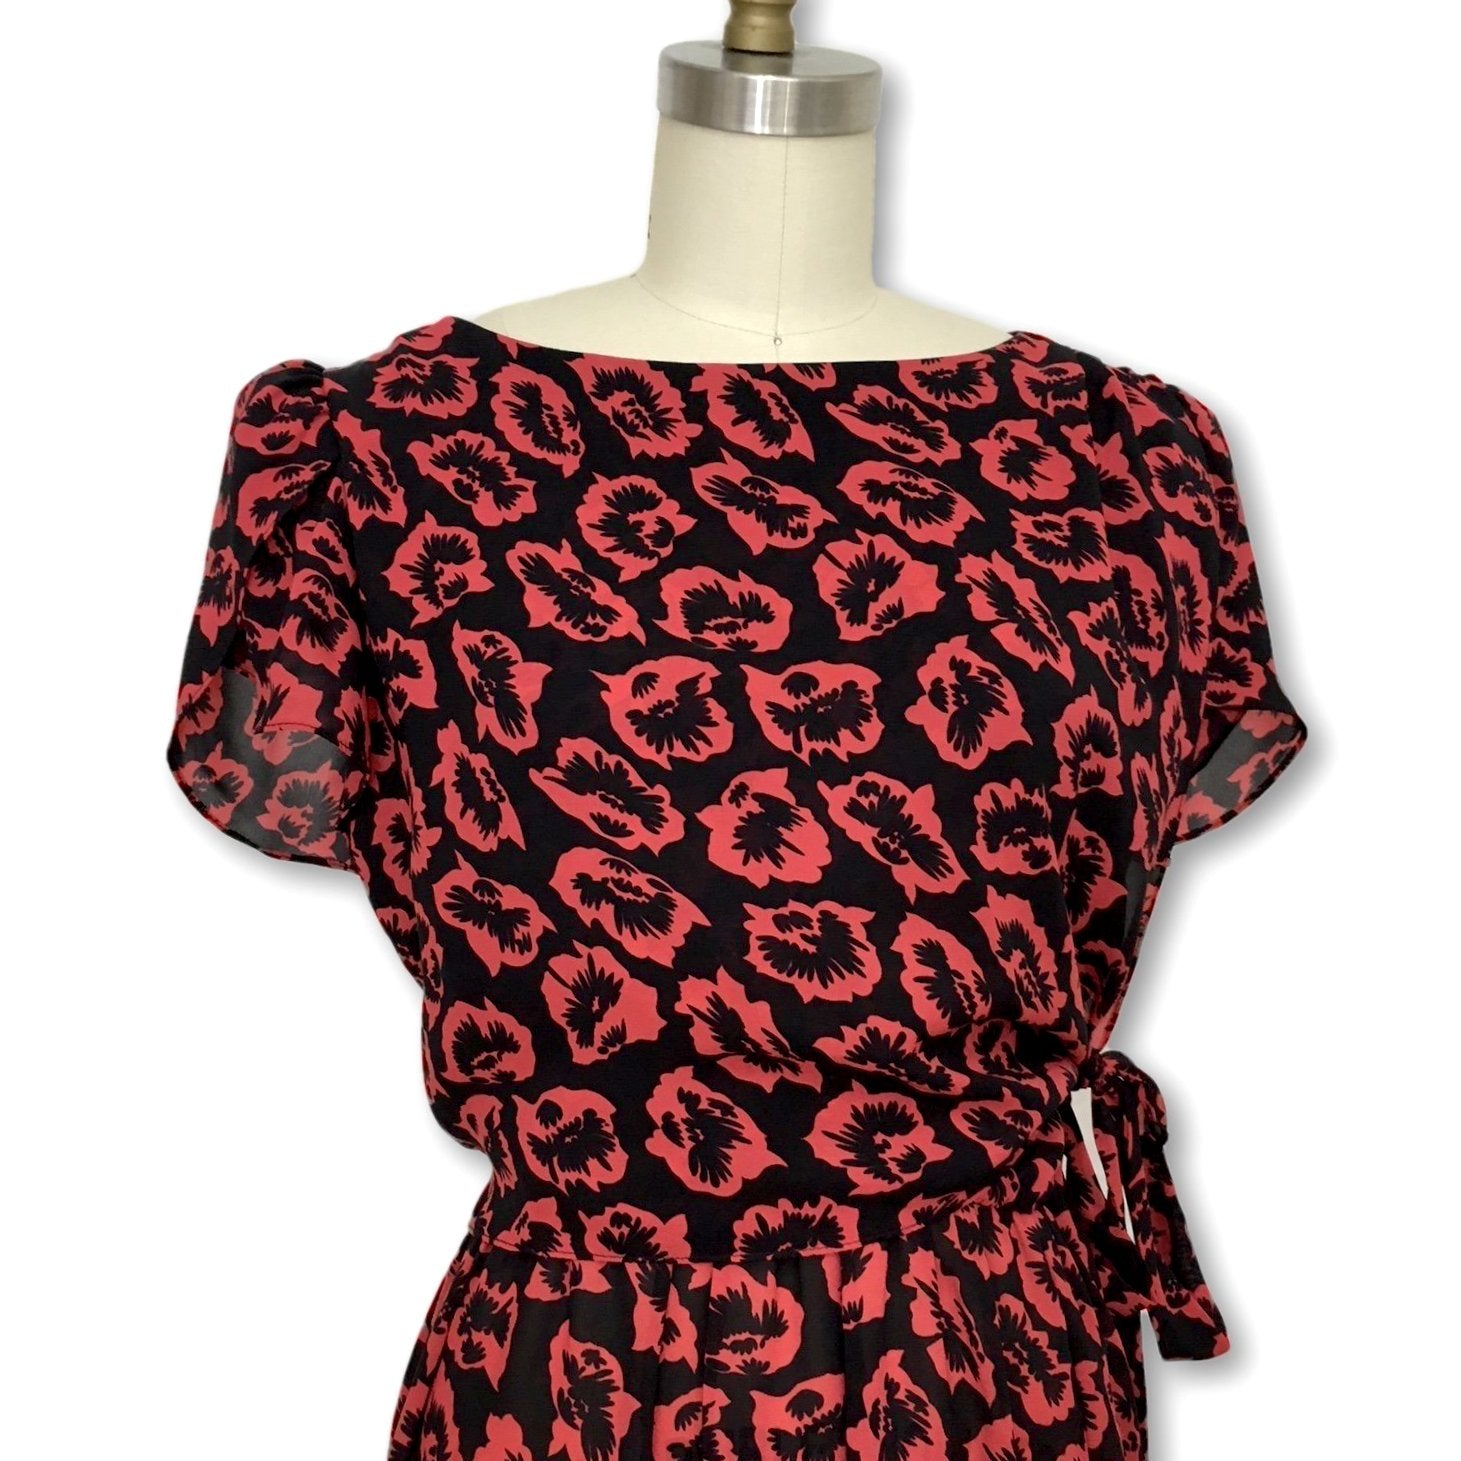 Vintage 1980's petal-sleeve dress with a 1940's-inspired bold red poppy print.